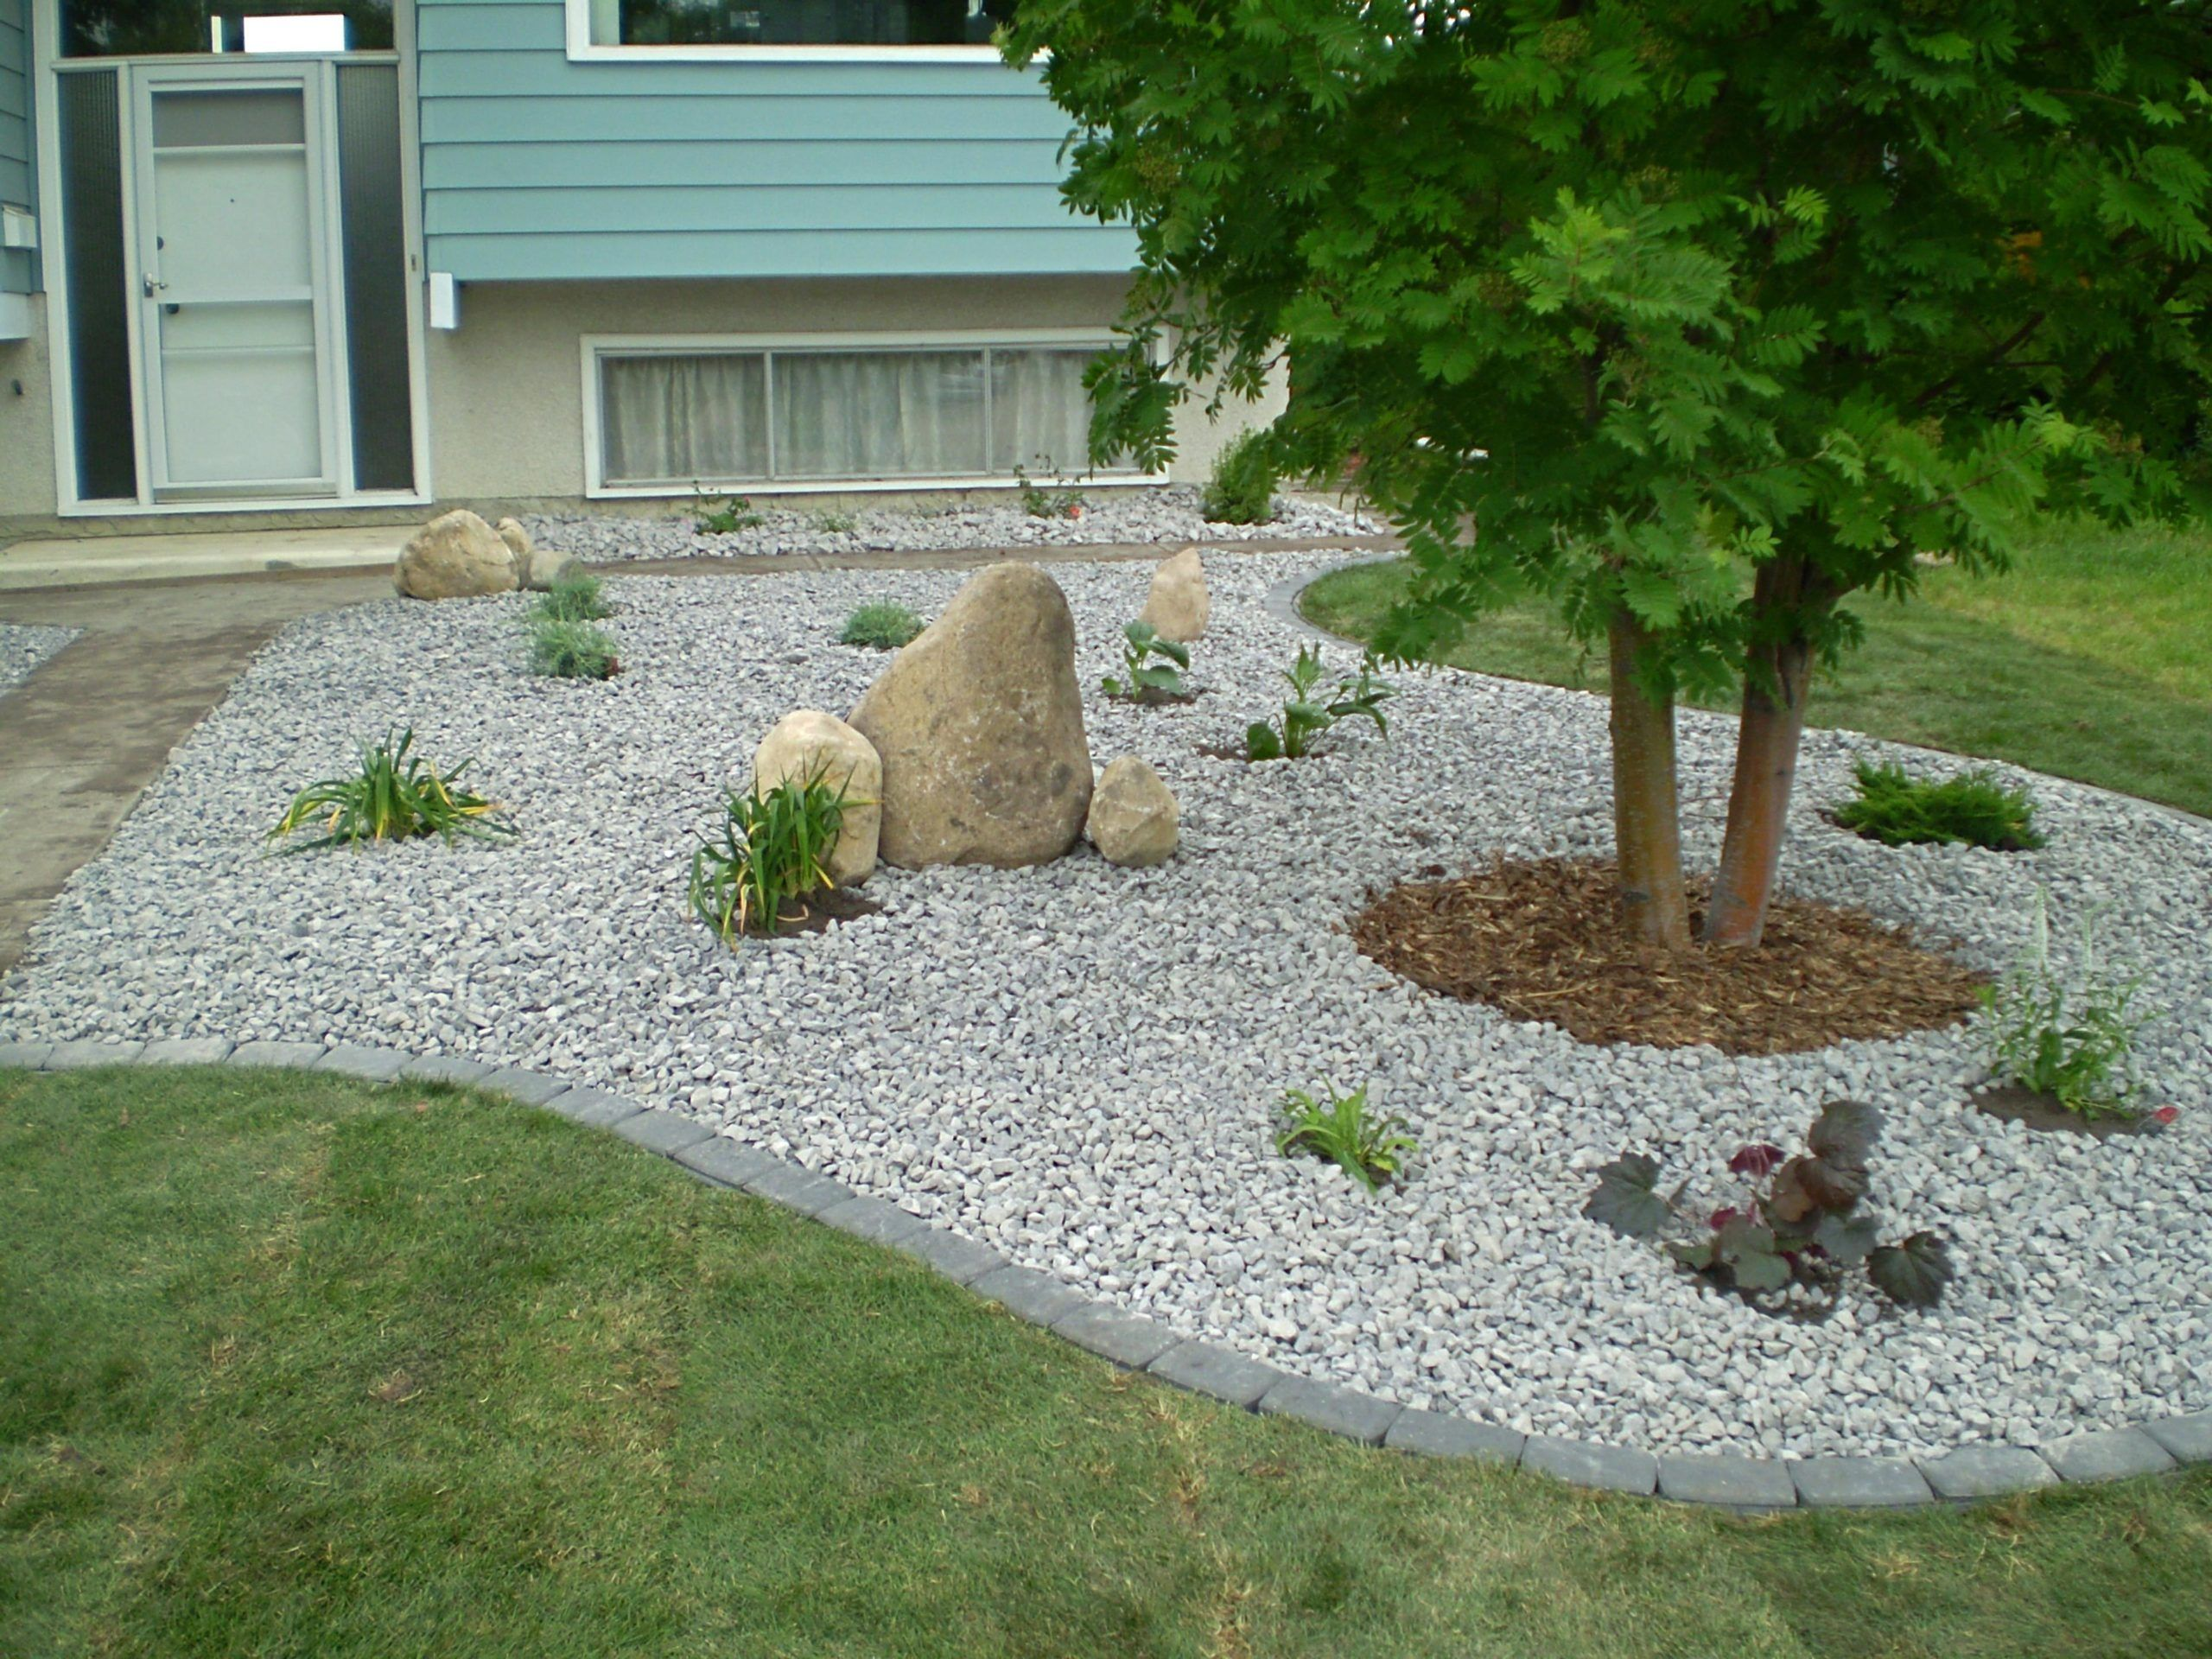 Excited Front Yard Landscaping Ideas With White Rocks Decor Renewal In 2020 Landscaping With Rocks Front Yard Landscaping Stone Landscaping